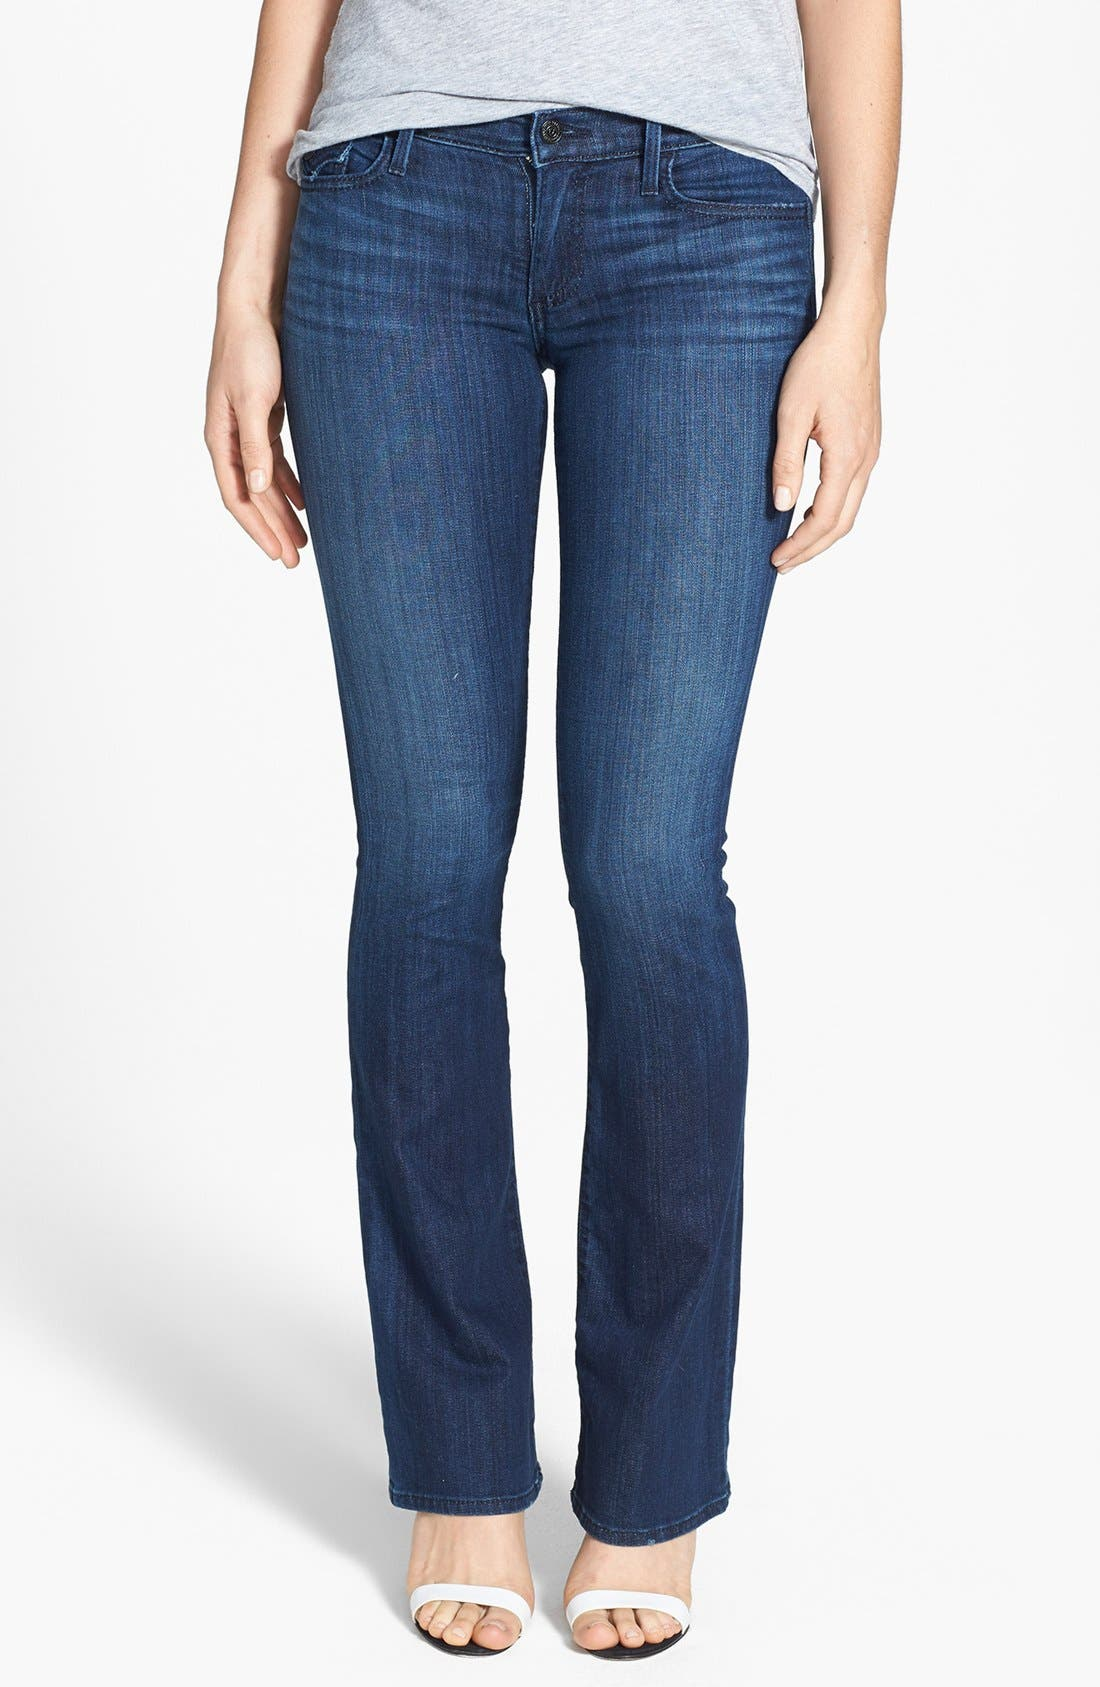 Alternate Image 1 Selected - True Religion Brand Jeans 'Becca' Bootcut Jeans (Faithful Message)